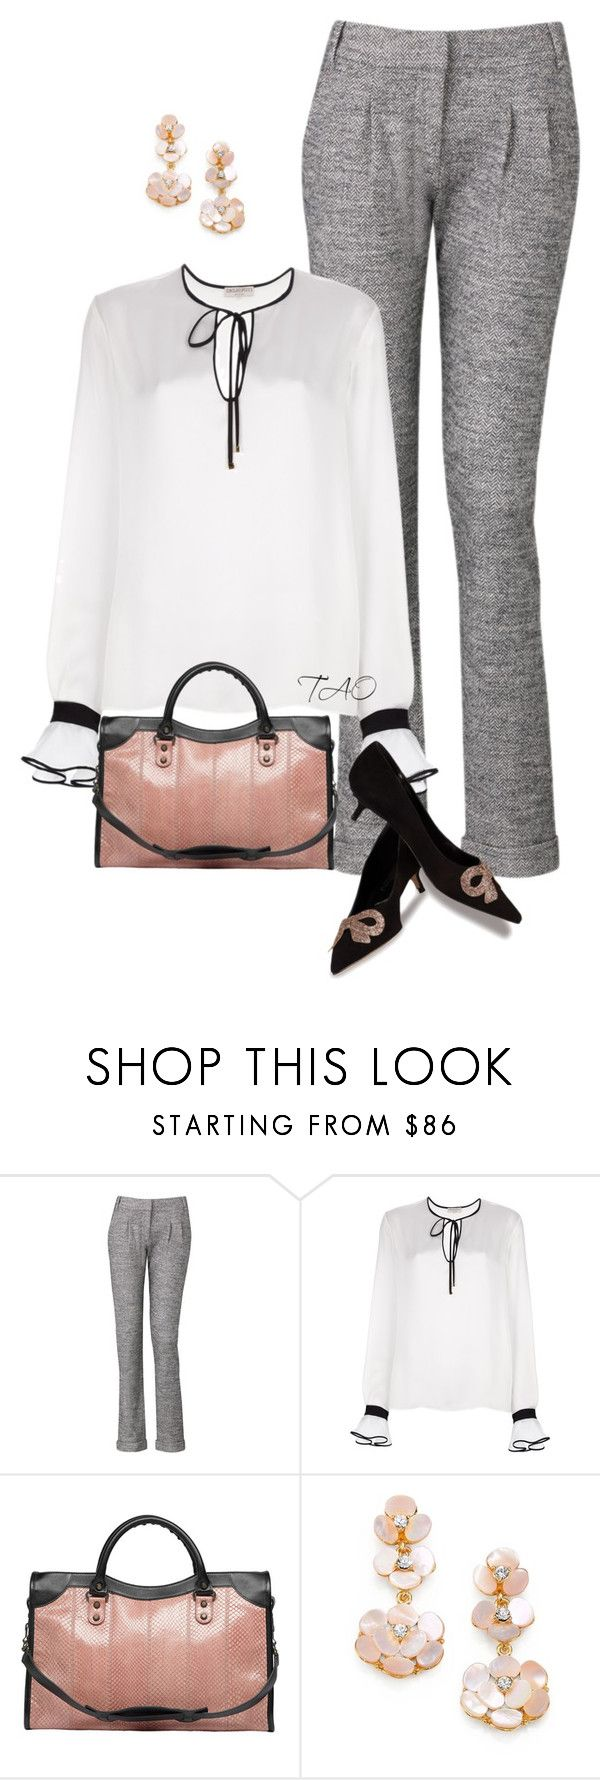 """""""Girly Girl Touches"""" by tishaod ❤ liked on Polyvore featuring Komodo, Emilio Pucci, Balenciaga, Kate Spade and Butter Shoes"""